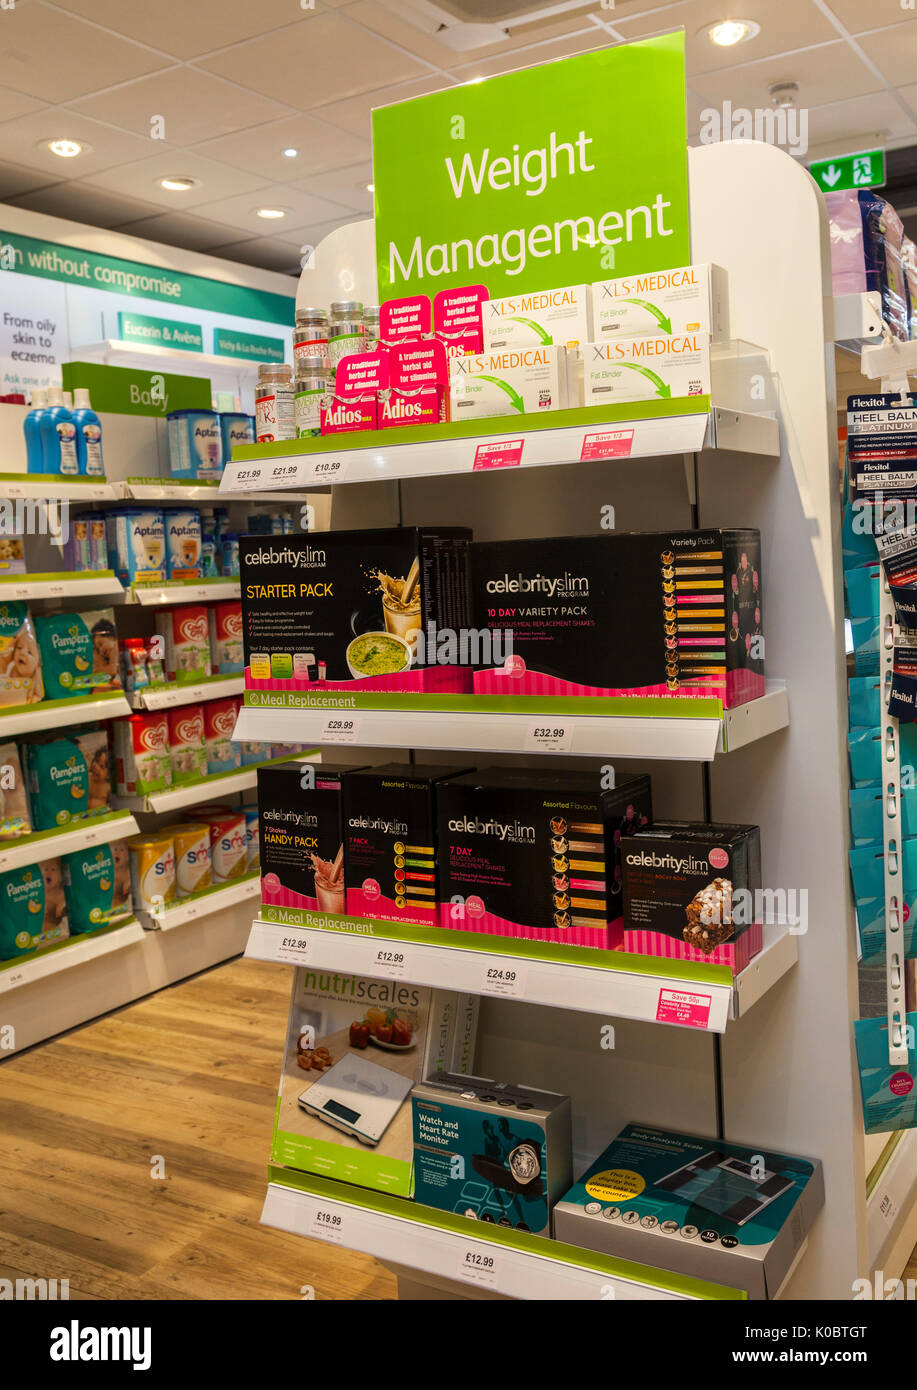 Weight management products in a chemist shop,pharmacy shelf,pharmacists,drug store. Celebrity slim, - Stock Image